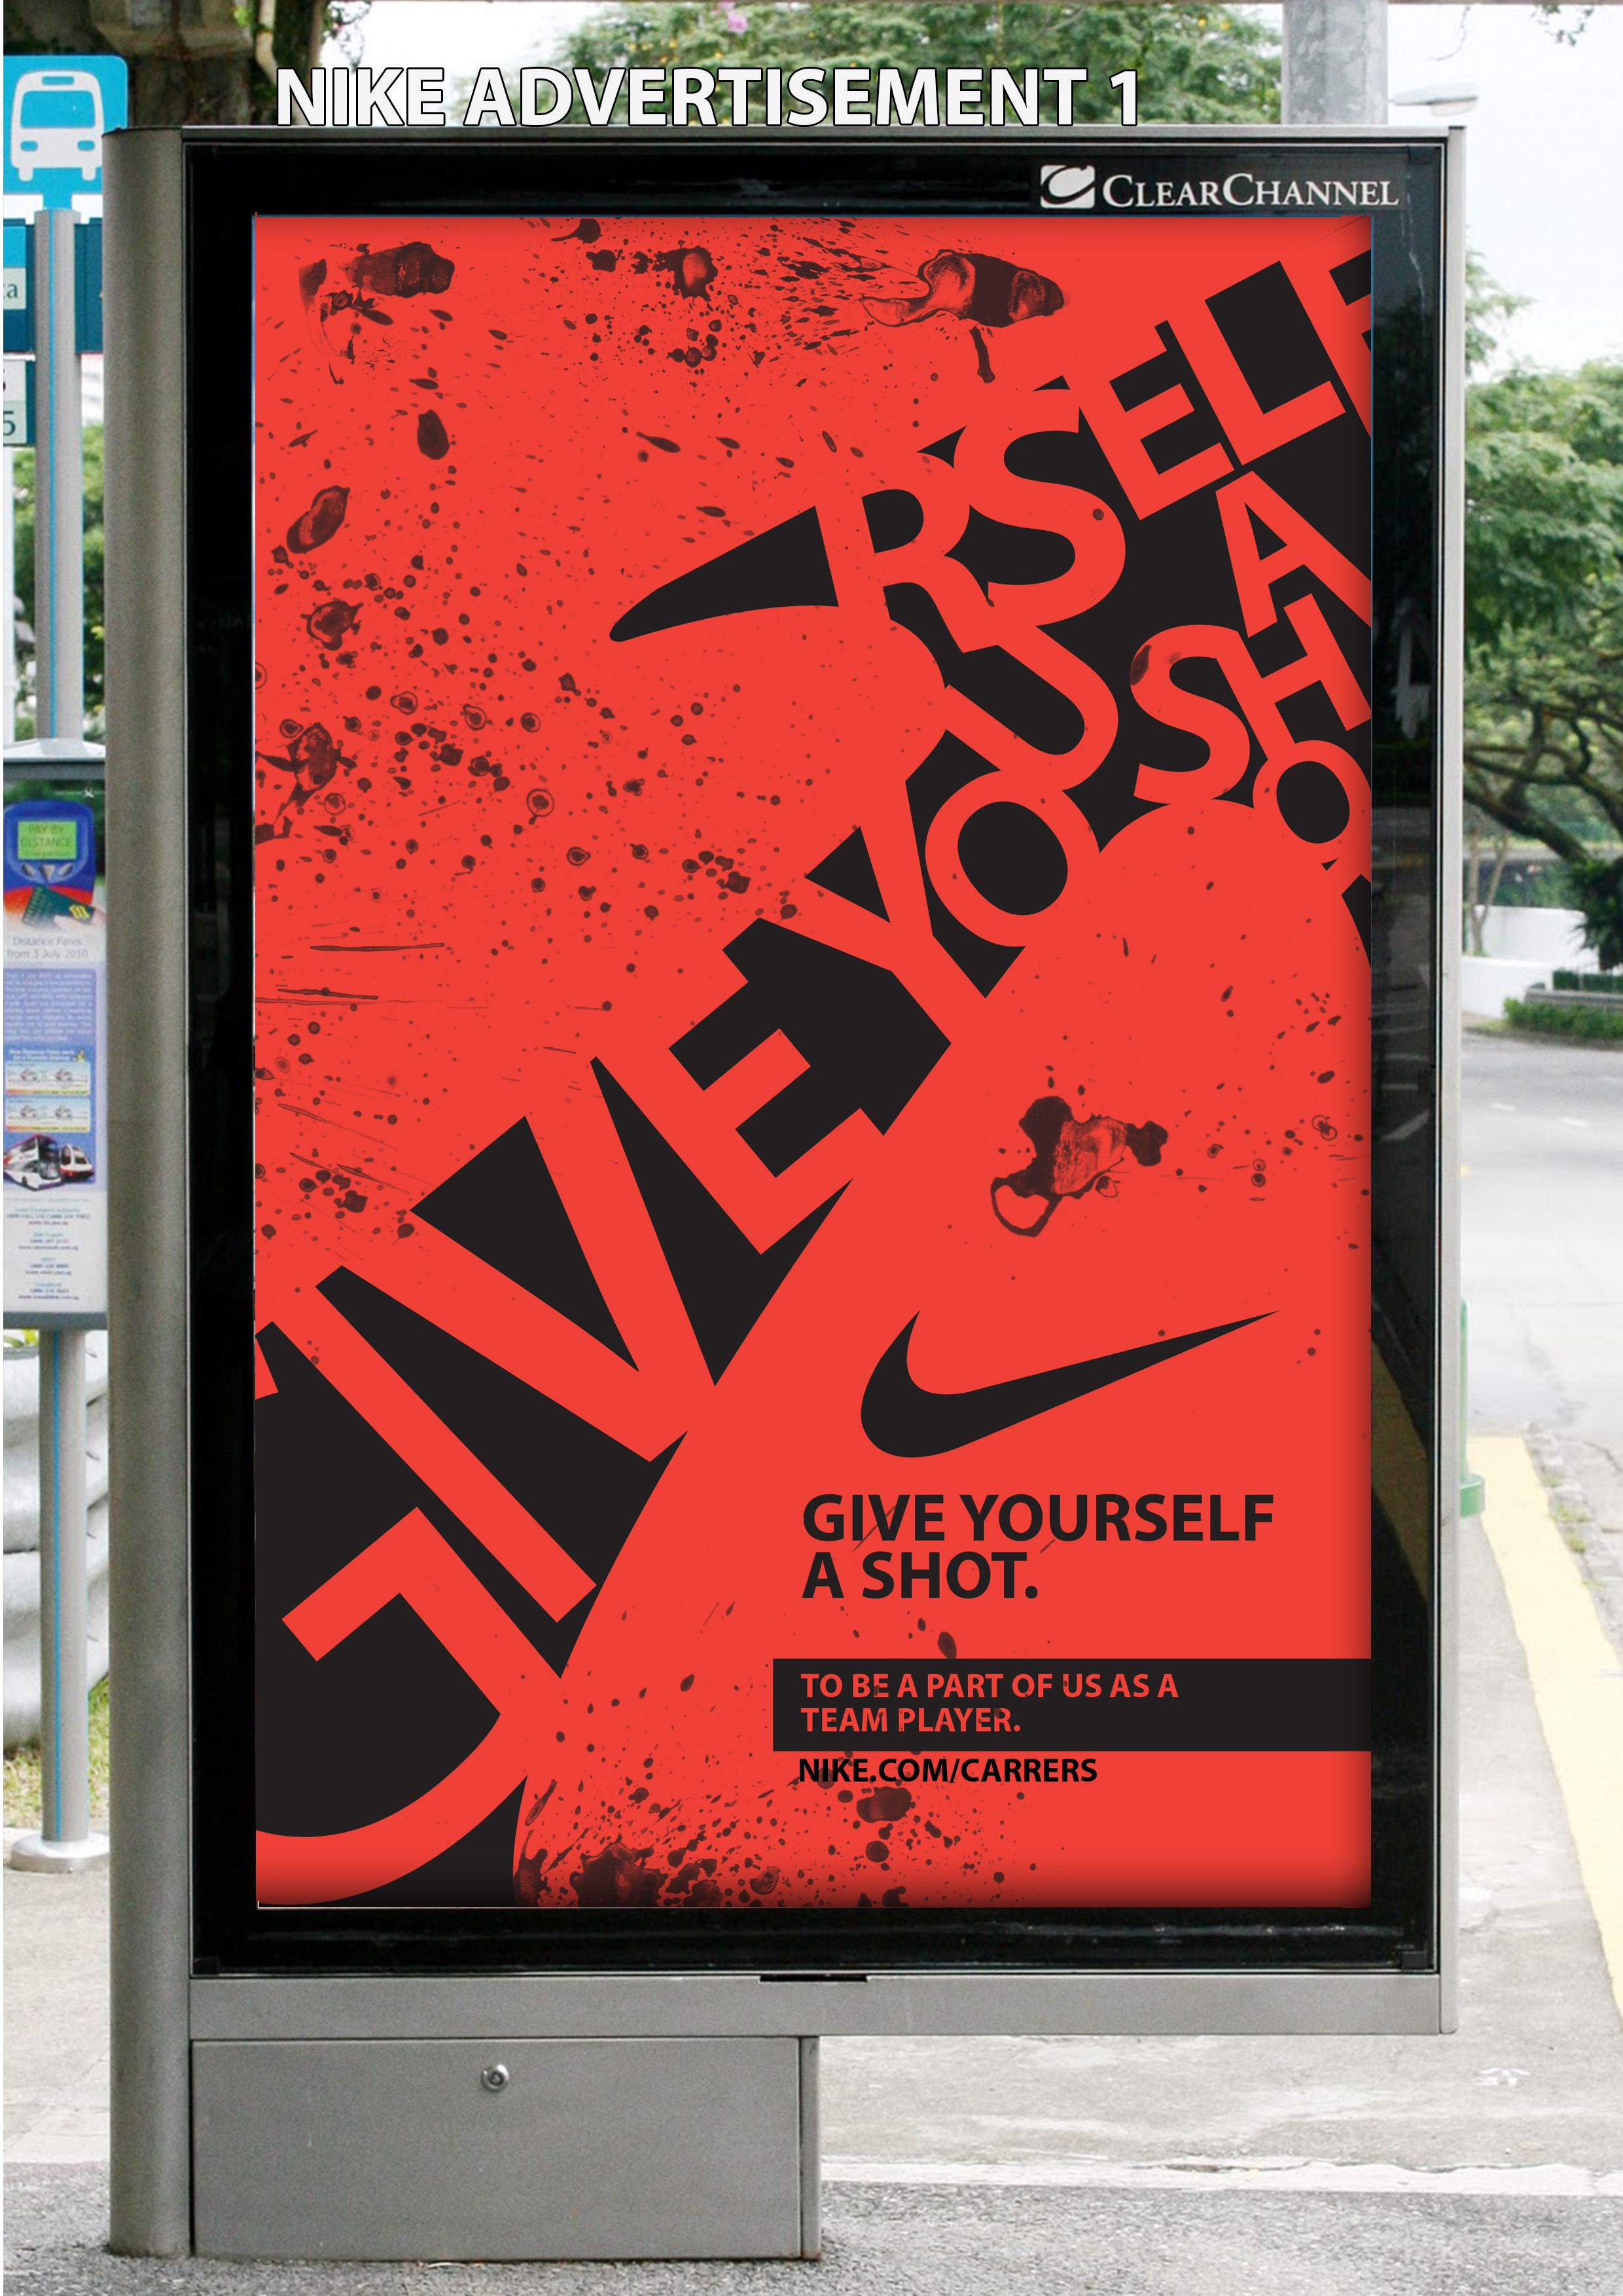 Simplificar directorio satélite  An advertising campaign to promote recruitment for Nike - Bus-Stop Advert |  Creative graphics, Stop ad, Advertising